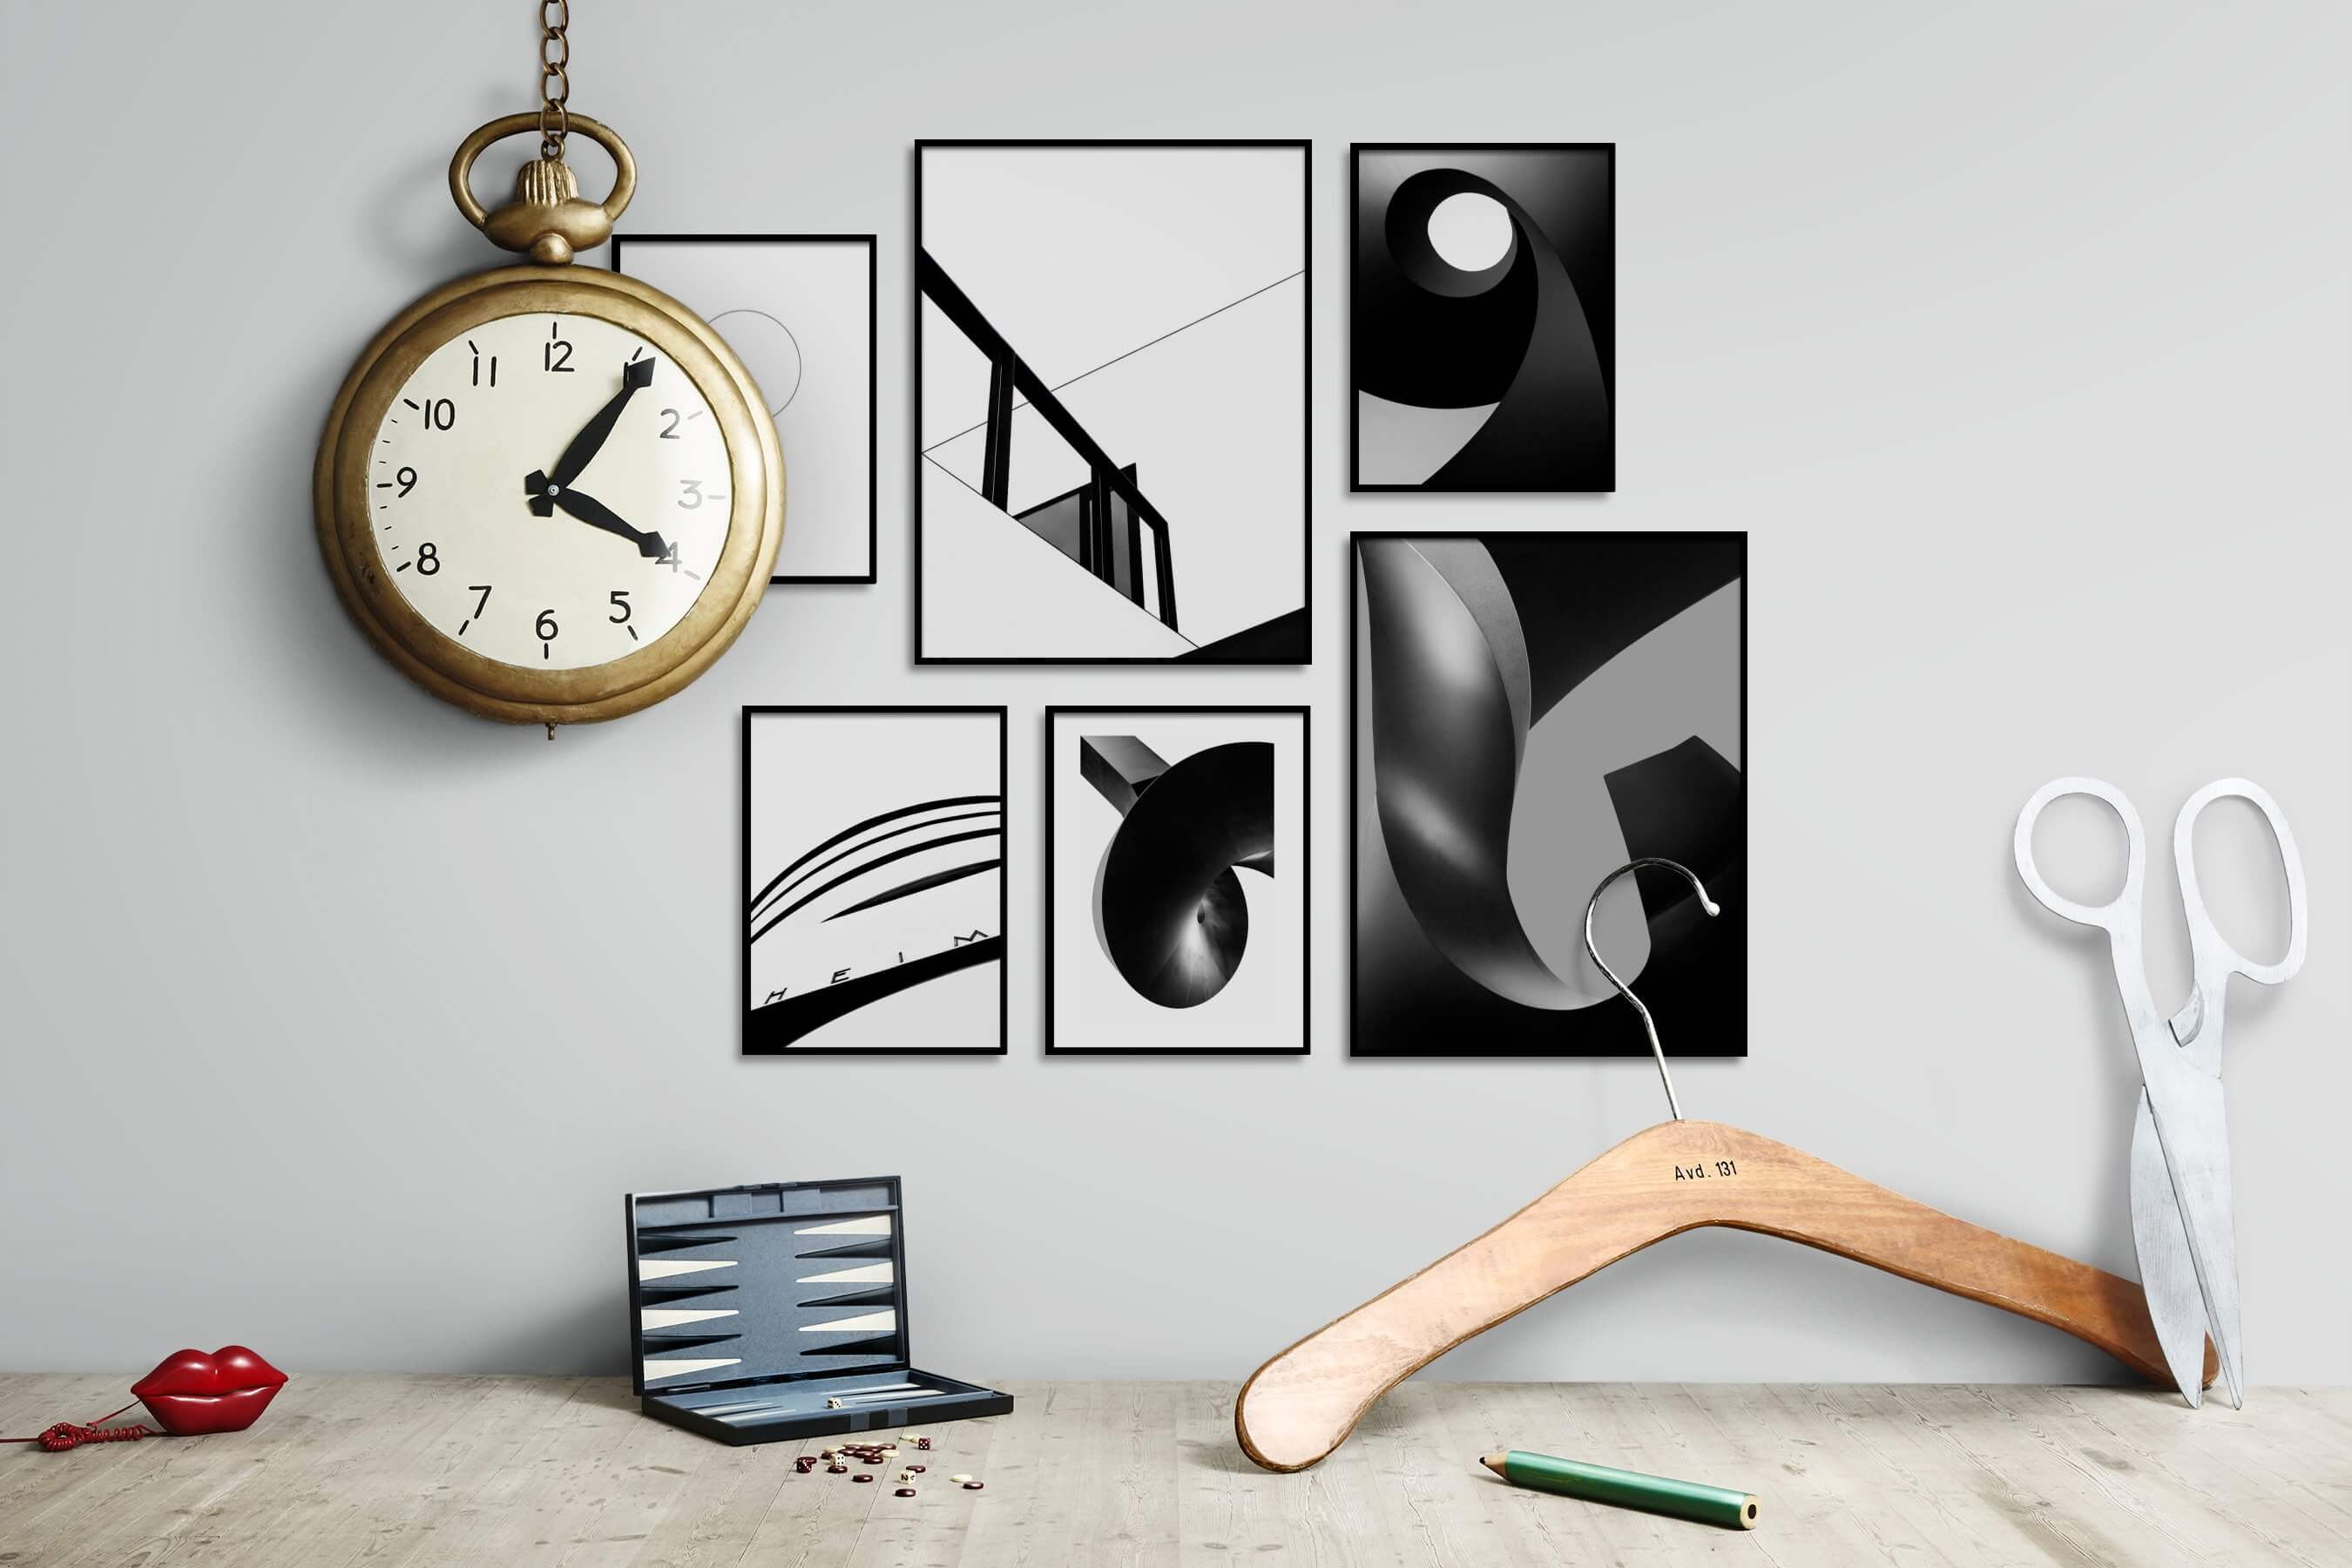 Gallery wall idea with six framed pictures arranged on a wall depicting Black & White, Bright Tones, For the Minimalist, City Life, Americana, and For the Moderate